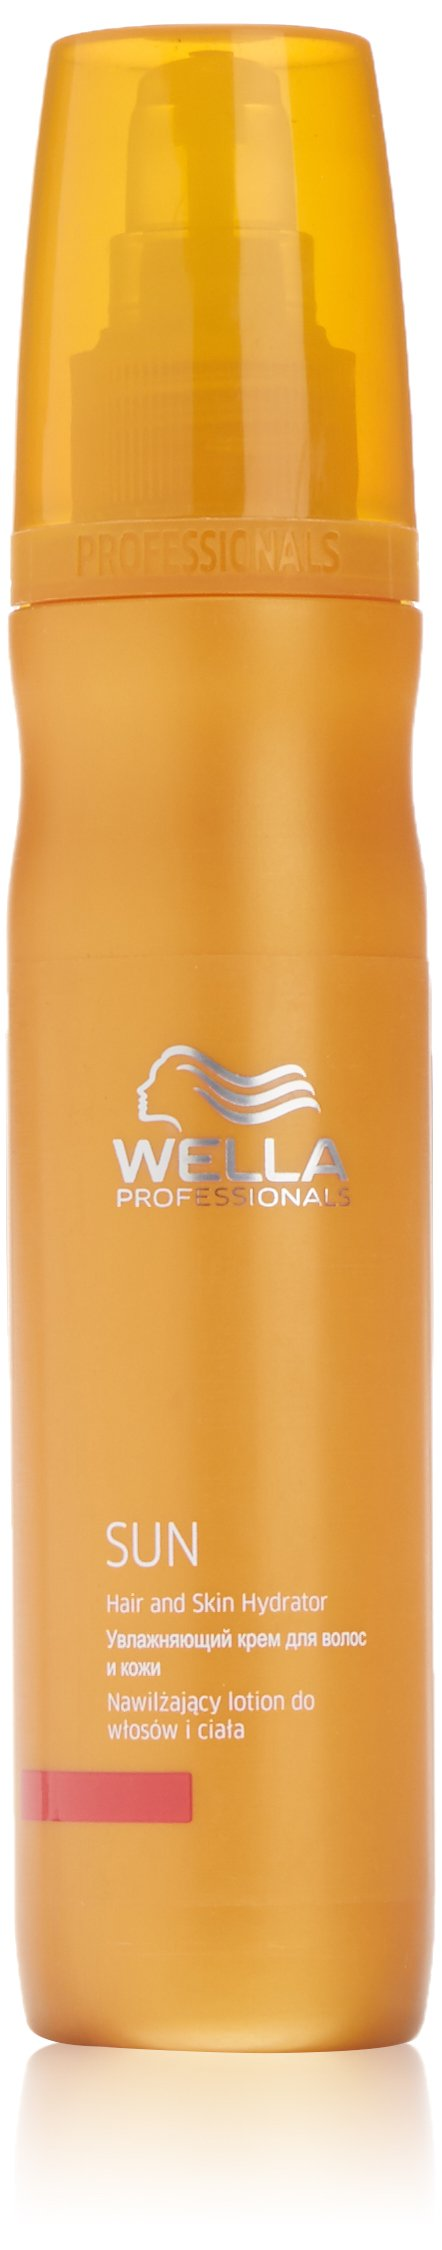 Professional Sun Care by Wella Hair and Skin Hydrator 150ml